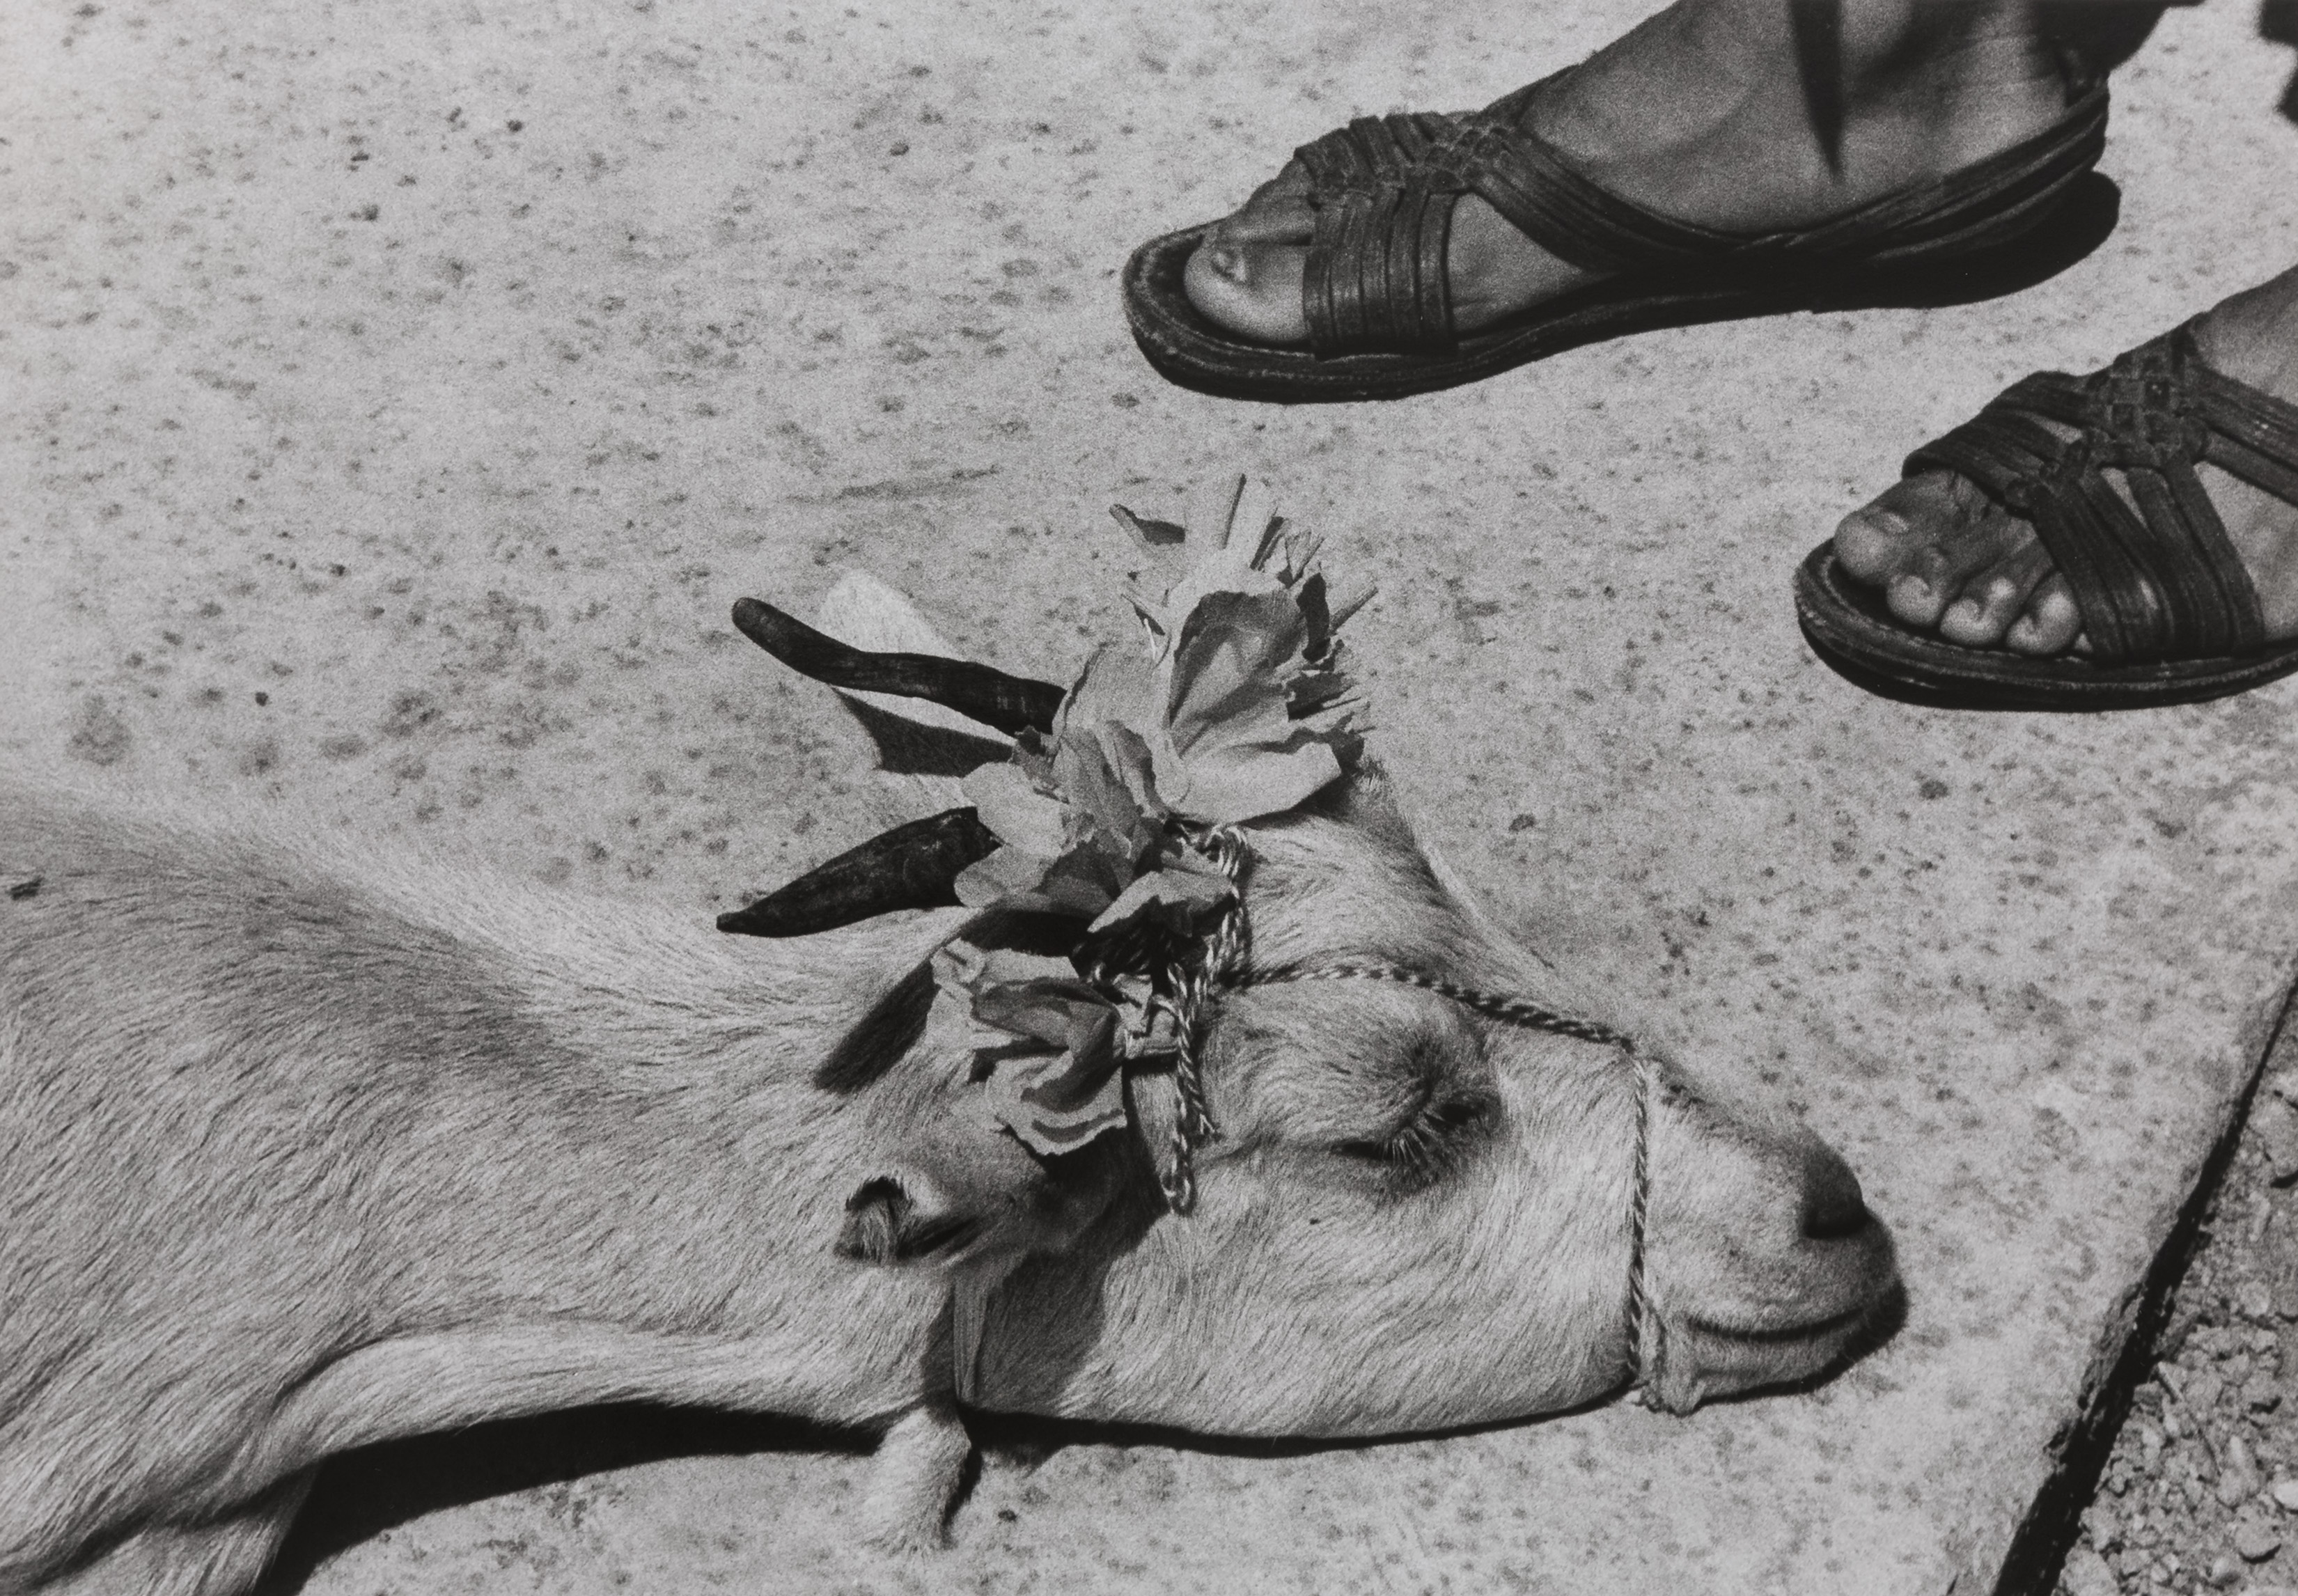 Graciela Iturbide, The Little Goat's Dance, Before the Slaughter, La Mixteca, Oaxaca, Mexico, 1992 © Graciela Iturbide. Courtesy of the Museum of Fine Arts, Boston